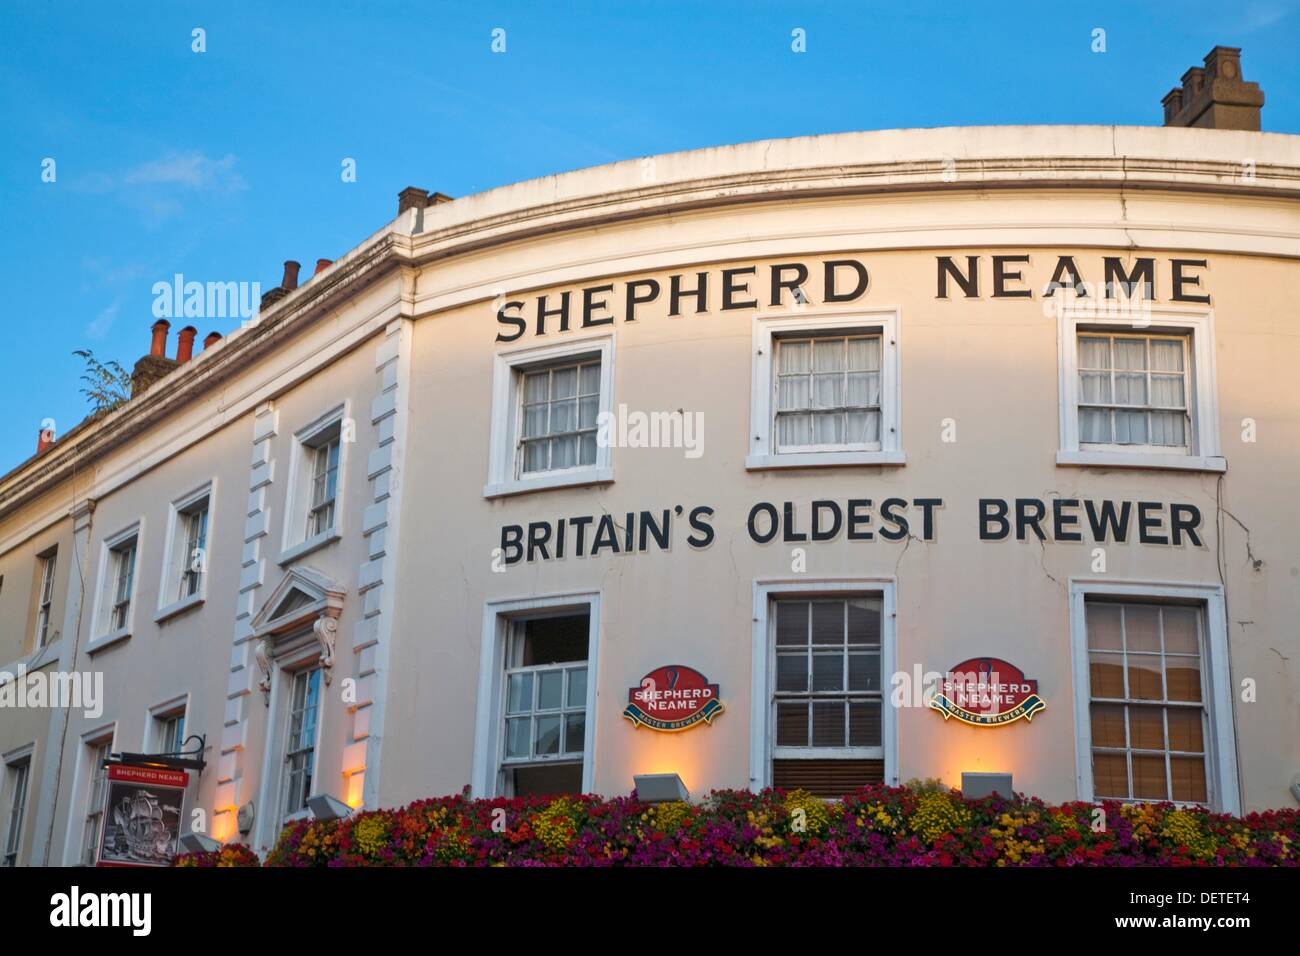 Shepherd Neame, Britain´soldest brewer, The Spanish Galleon Tavern, Greenwich, London, England, UK - Stock Image